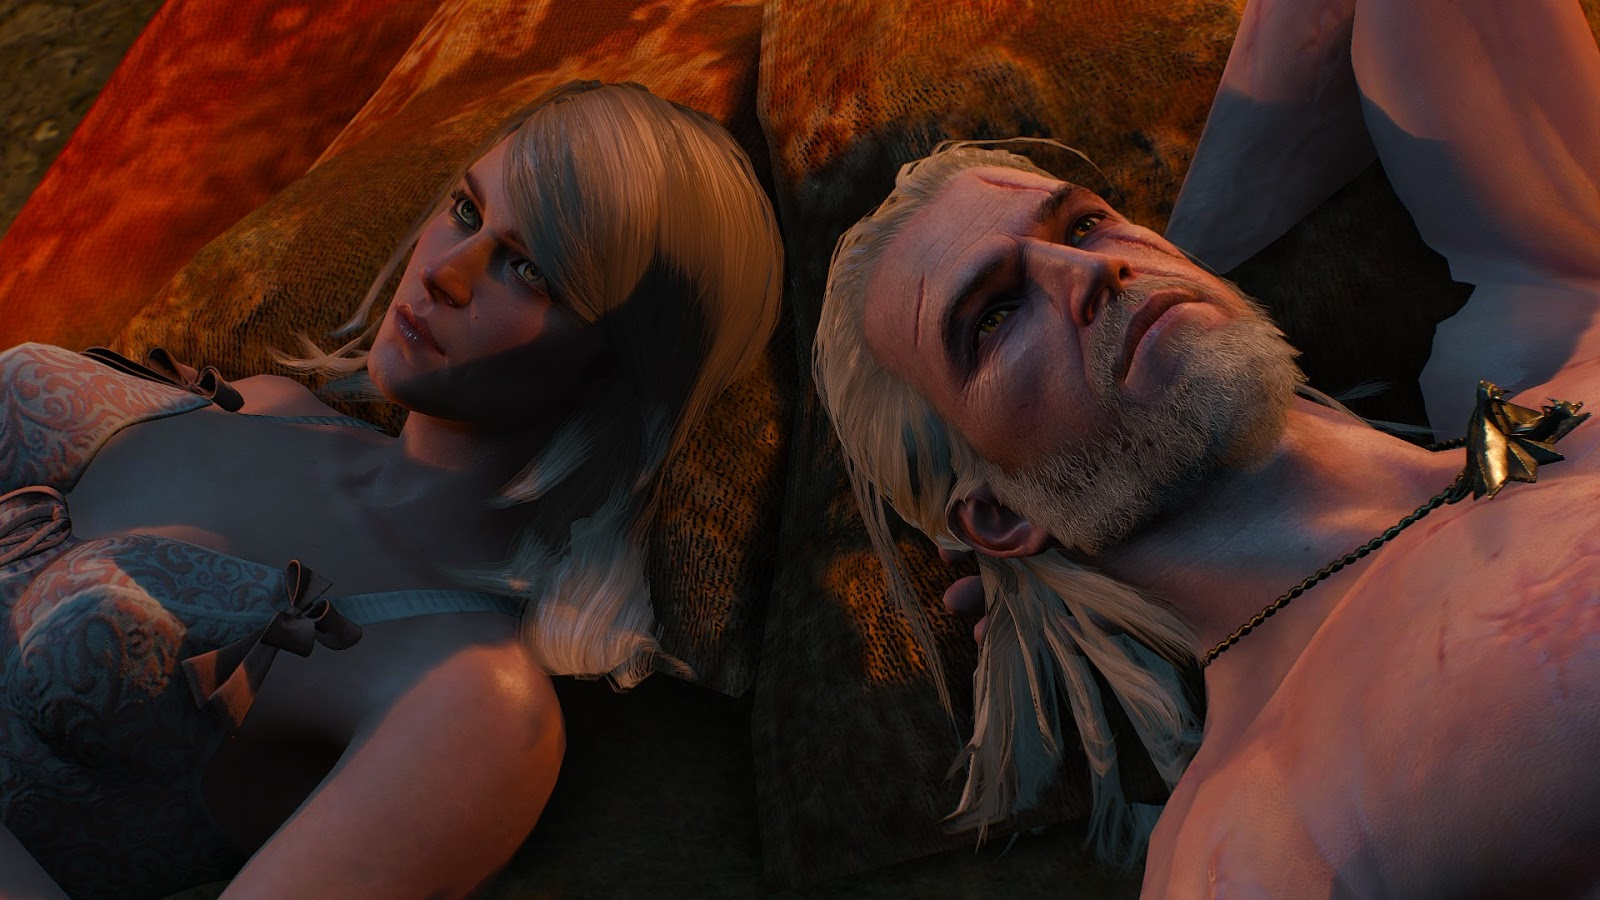 Witcher 3 monster nude mod hentia picture